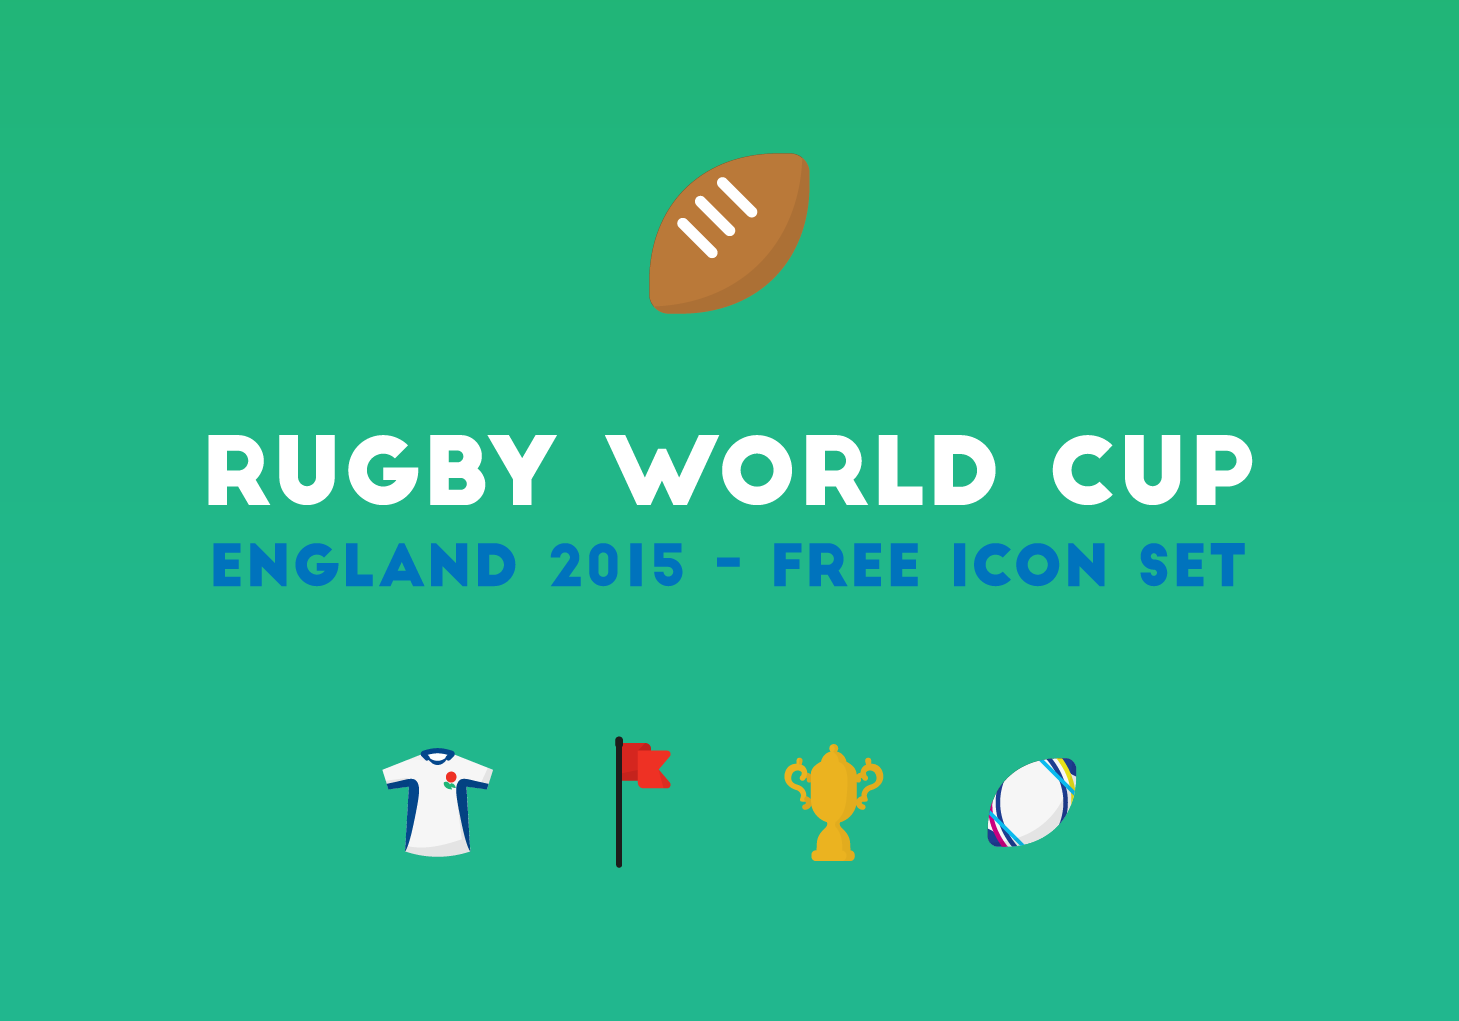 rugby-world-cup-free-icon-set